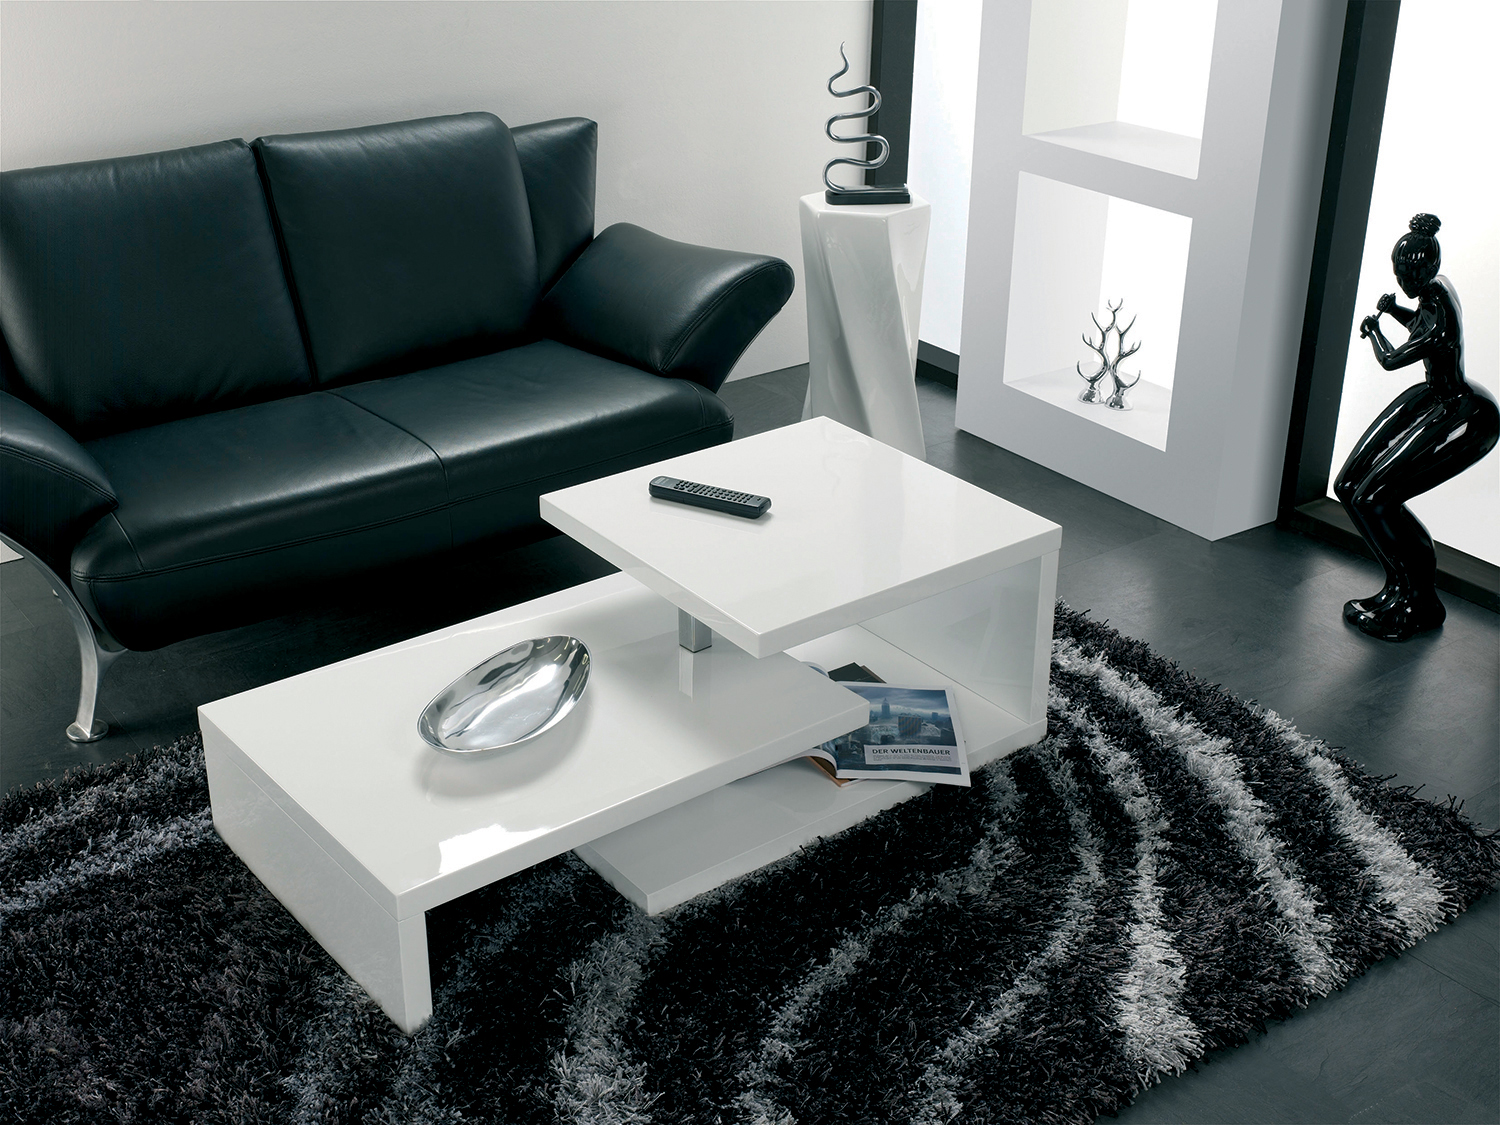 Bien choisir une table basse pour son salon - Table basse de salon ...